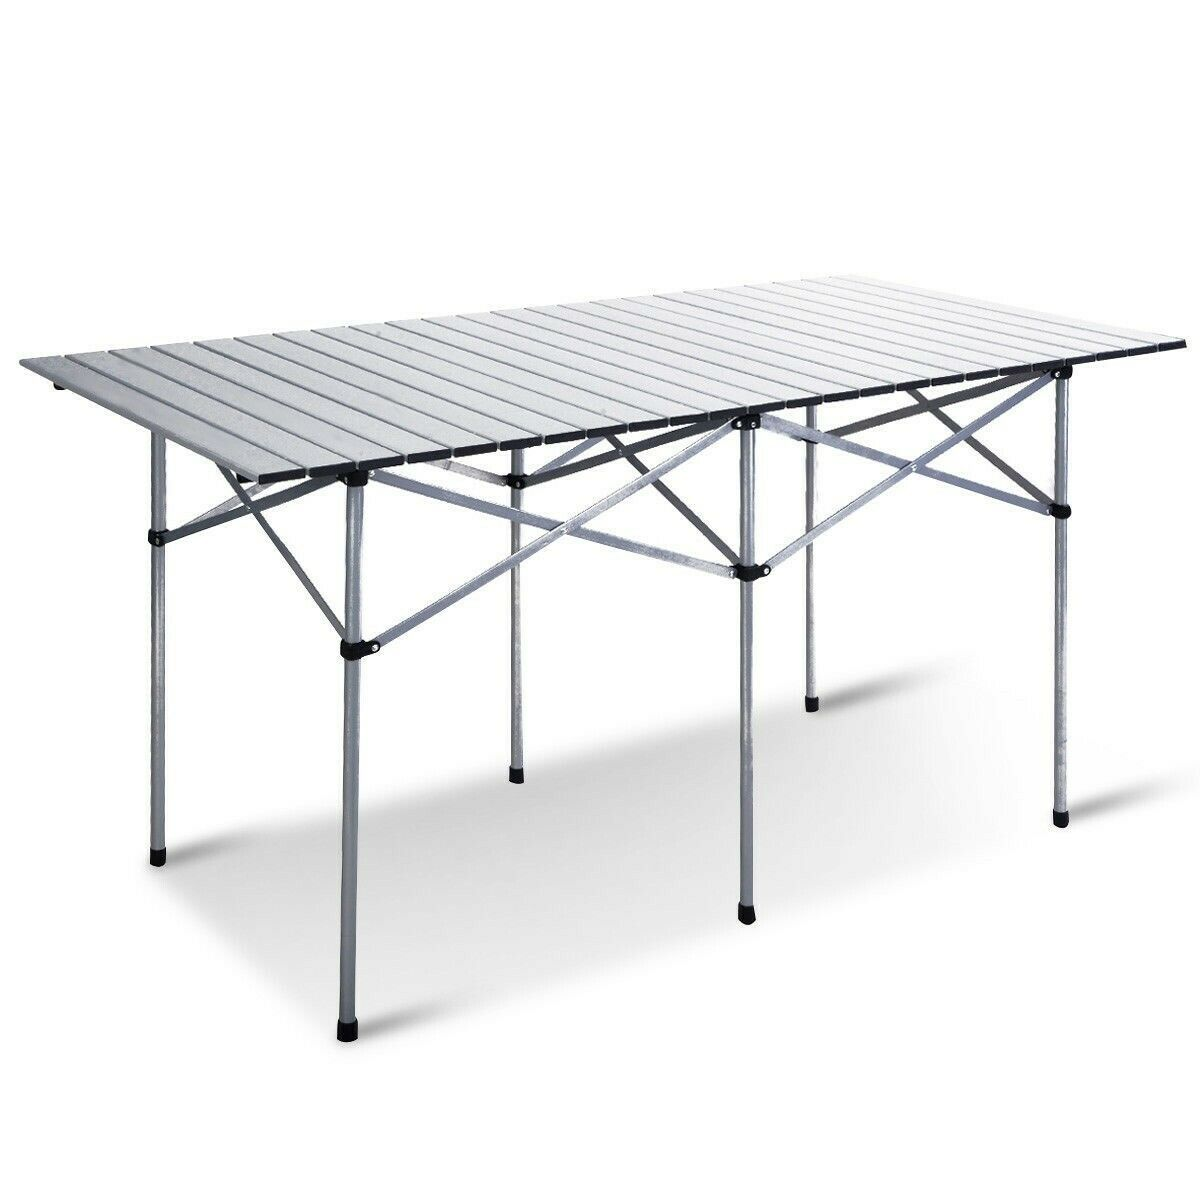 Aluminum Roll Up Top Folding Portable Camping Picnic Outdoor Rectangle Table